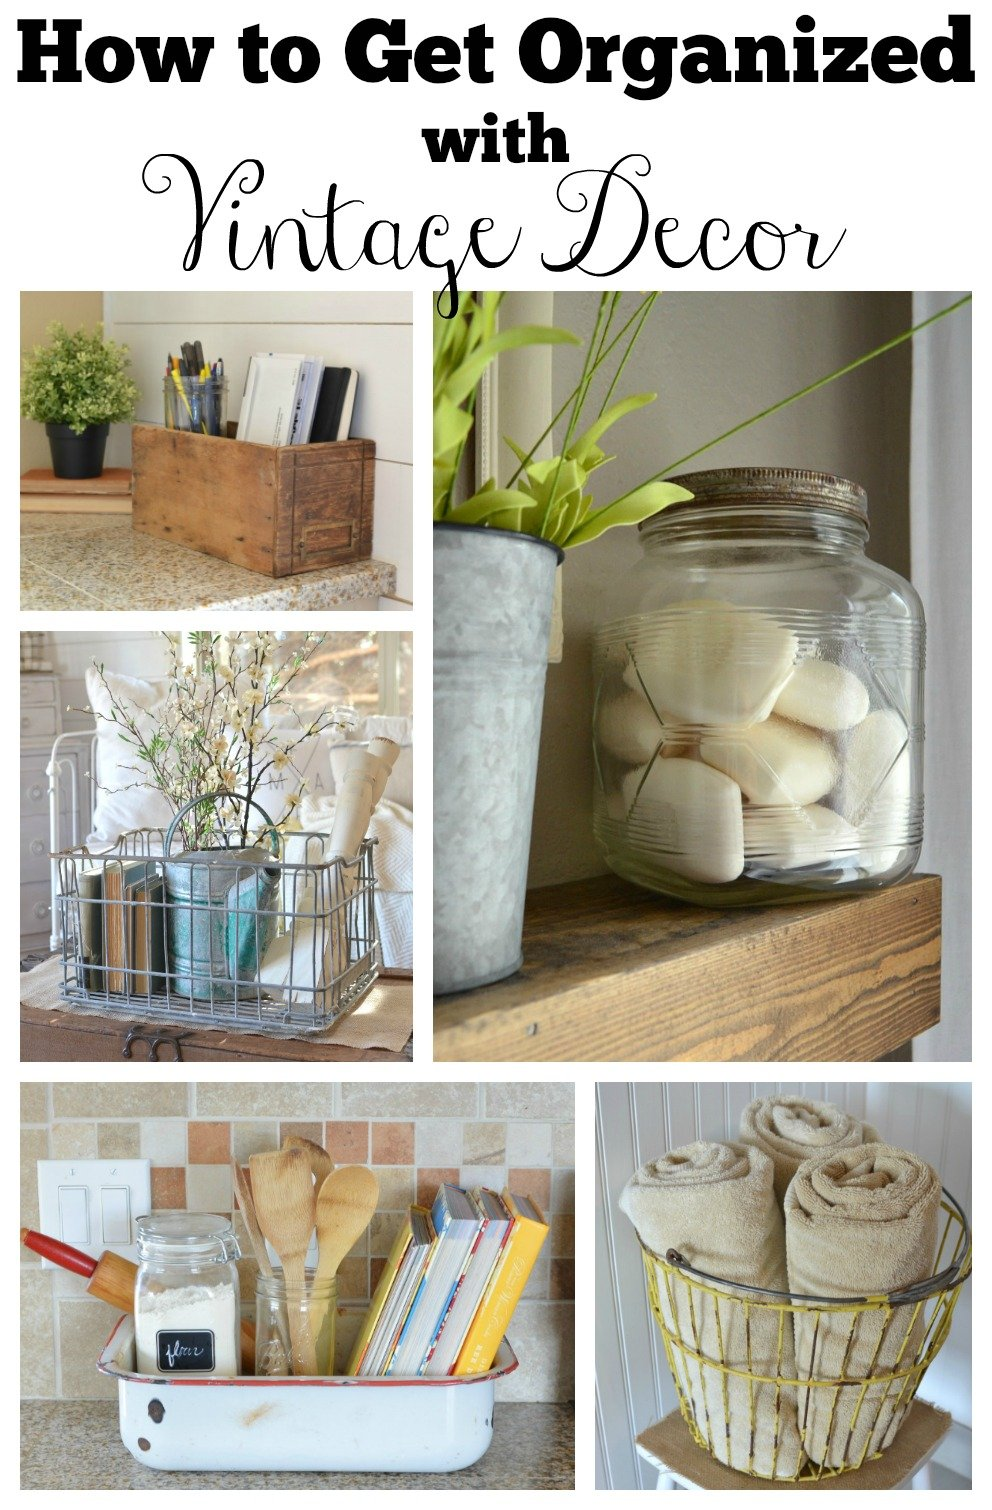 How to Get Organized with Vintage Decor. Simple ideas organize your home and everyday items with vintage decor.